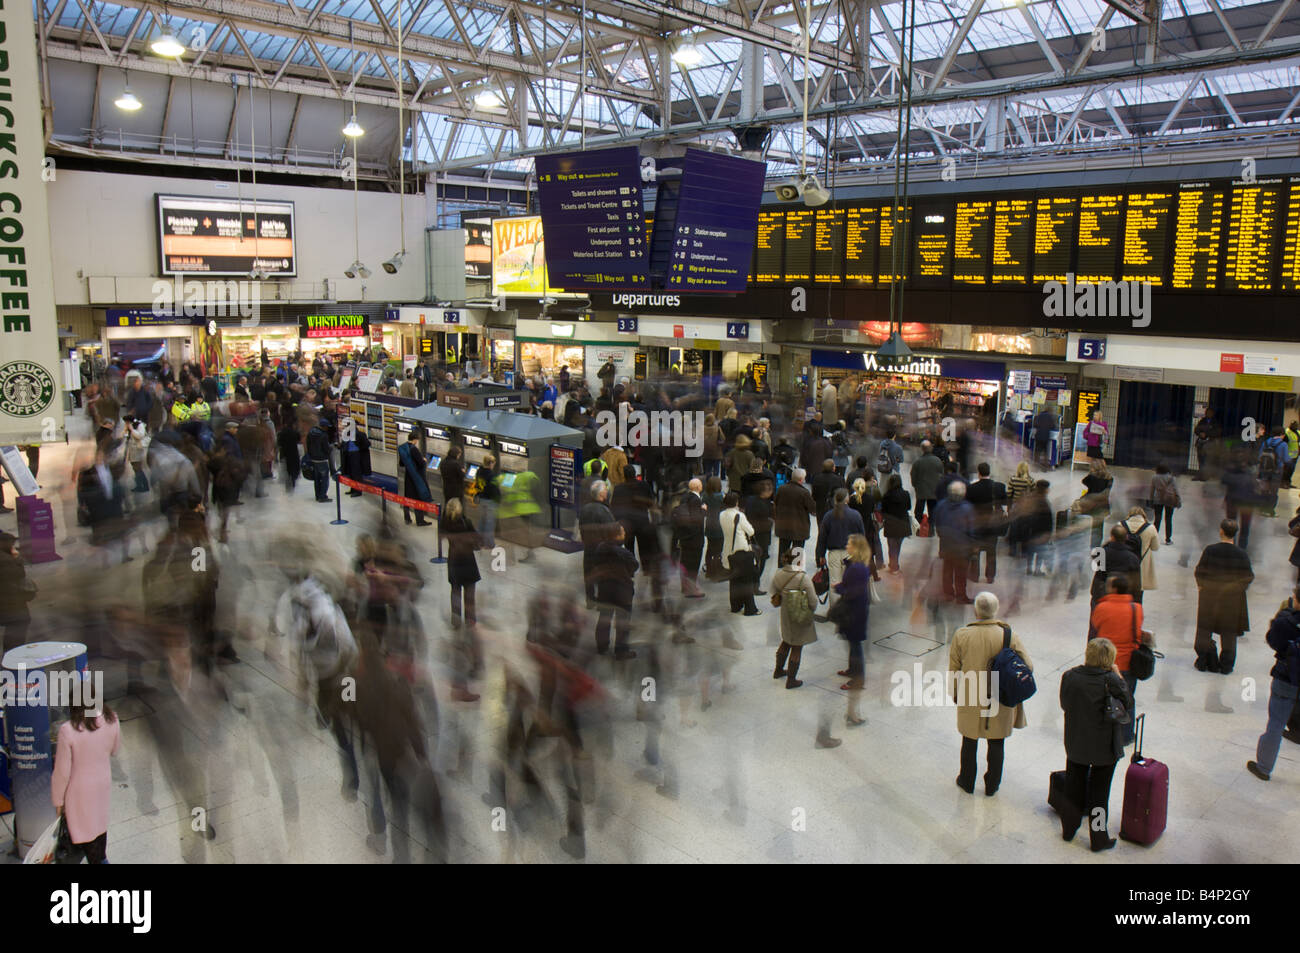 Blurred motion of commuters in London Waterloo Station, Waterloo, London, UK - Stock Image